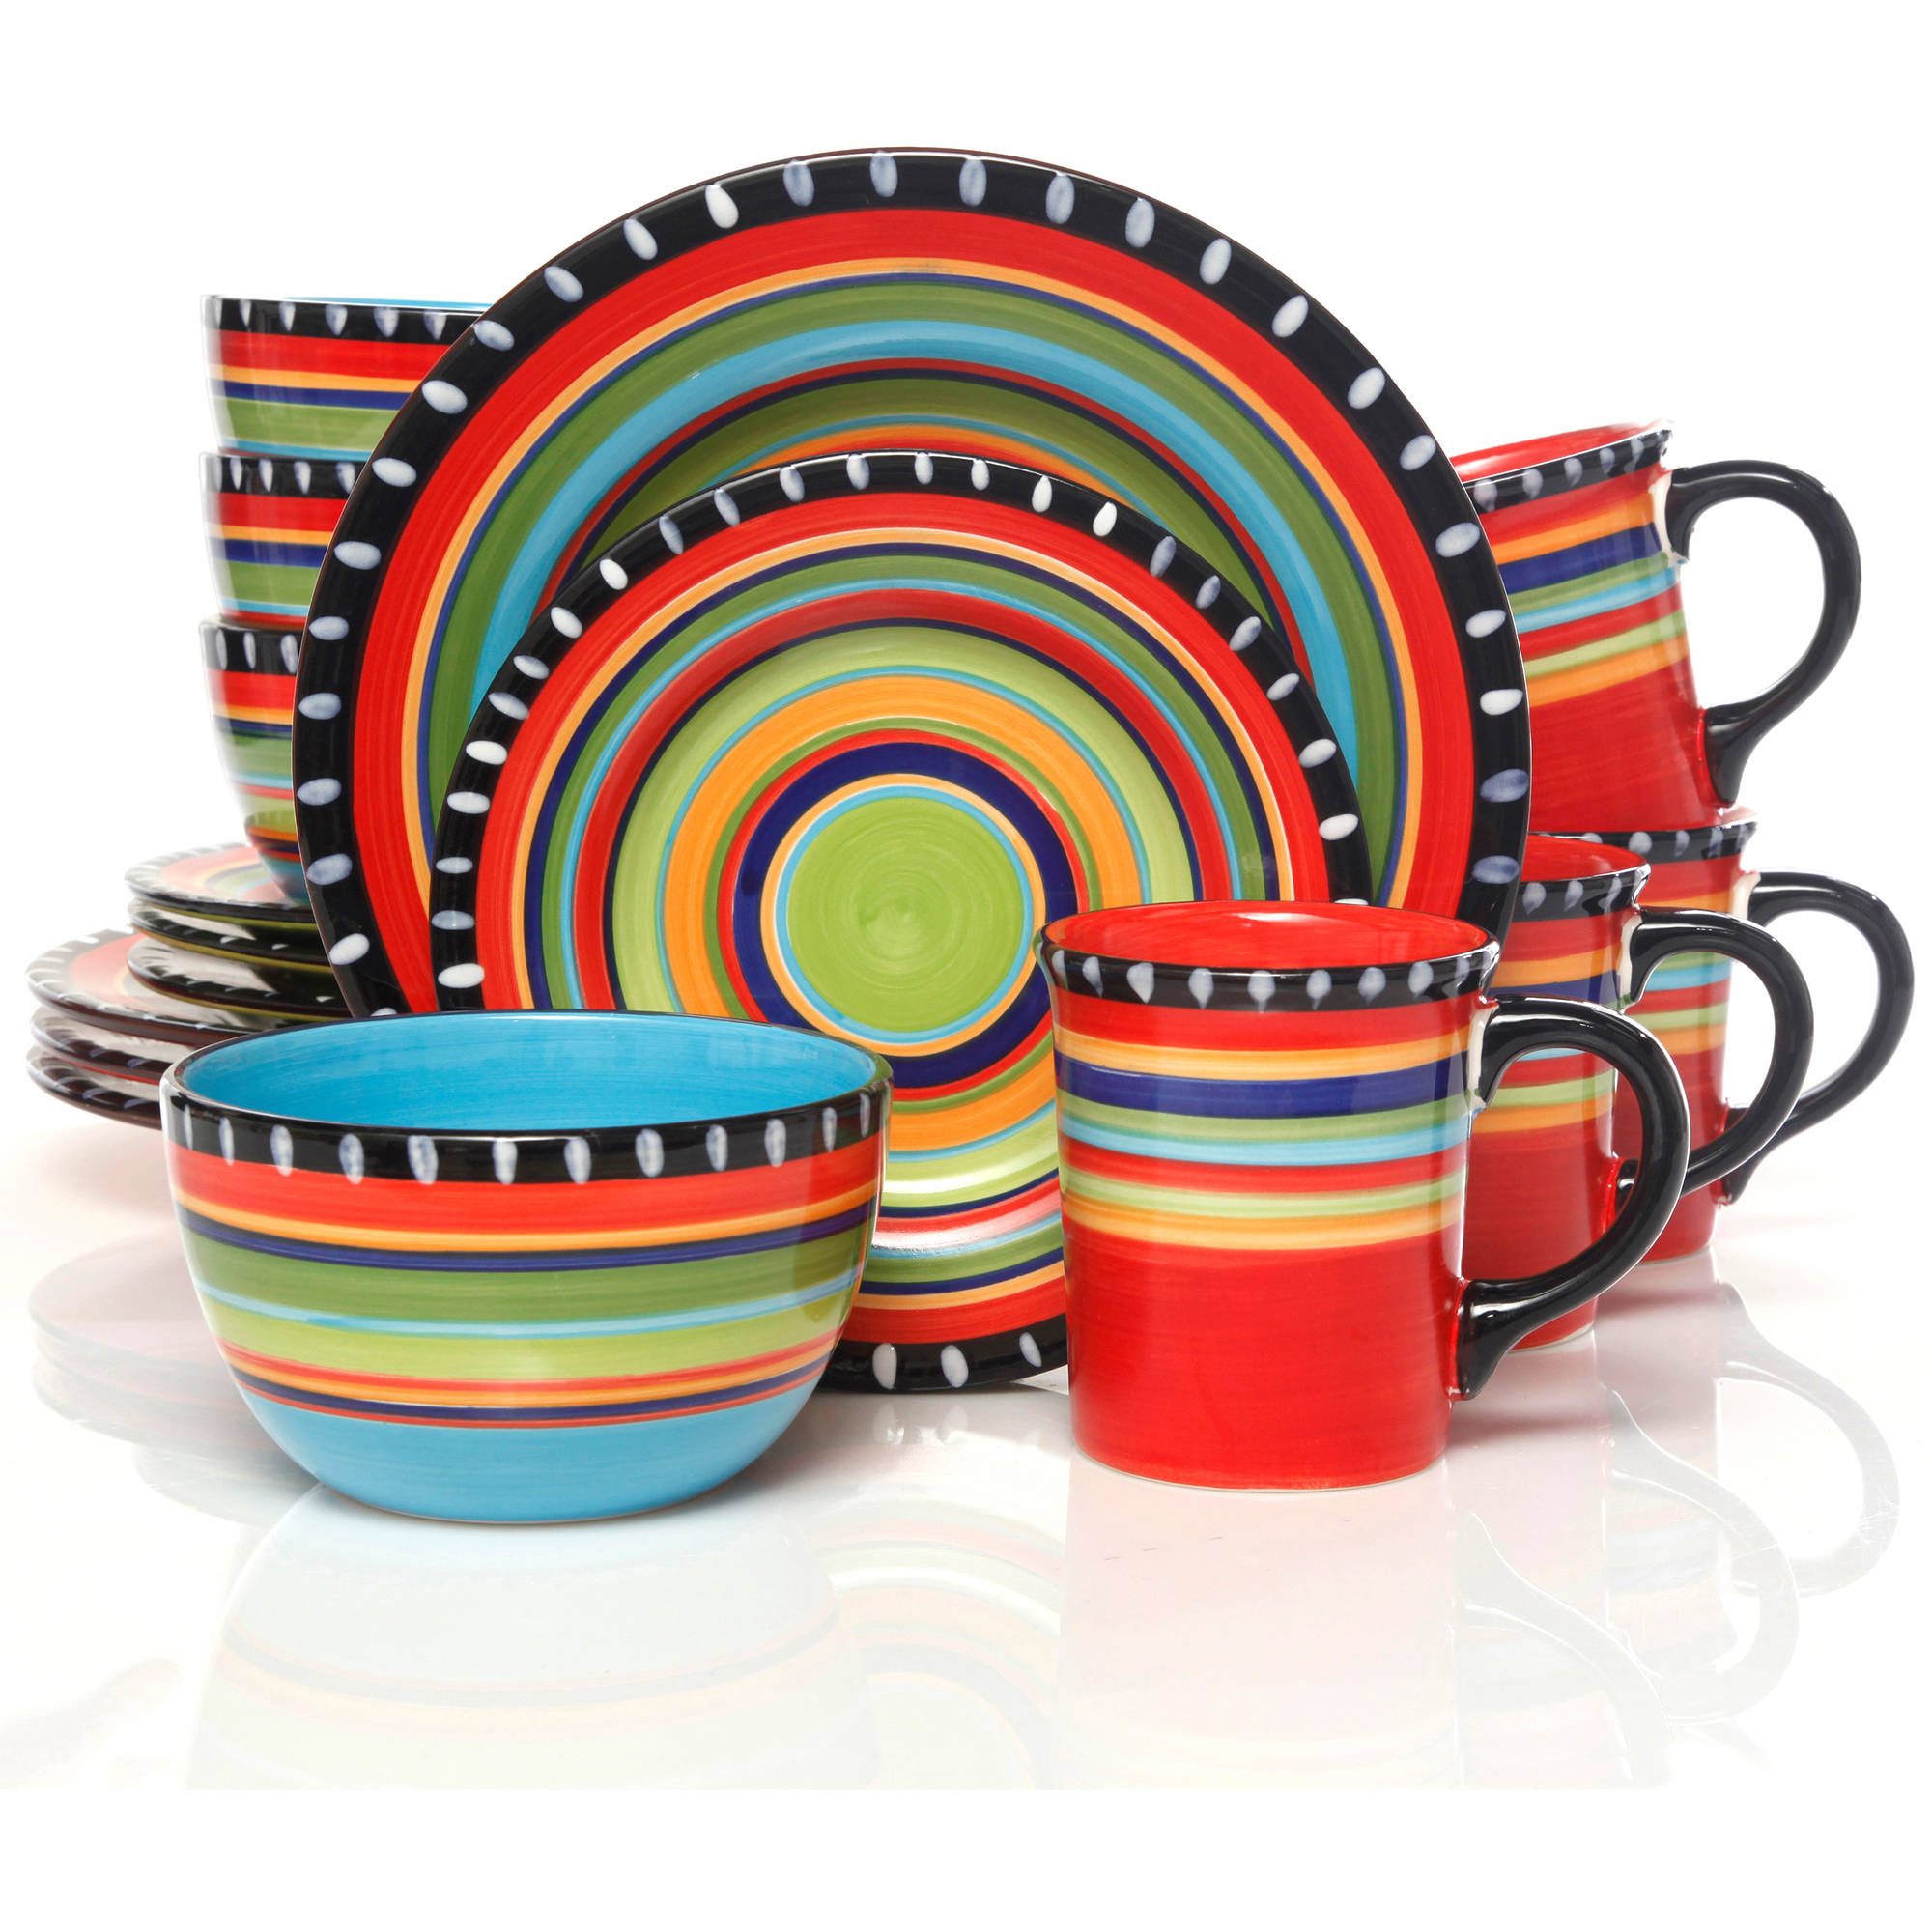 Gibson Home Pueblo Springs Handpainted 16-Piece Dinnerware Set Multi-Color  sc 1 st  Walmart & Gibson Home Pueblo Springs Handpainted 16-Piece Dinnerware Set ...